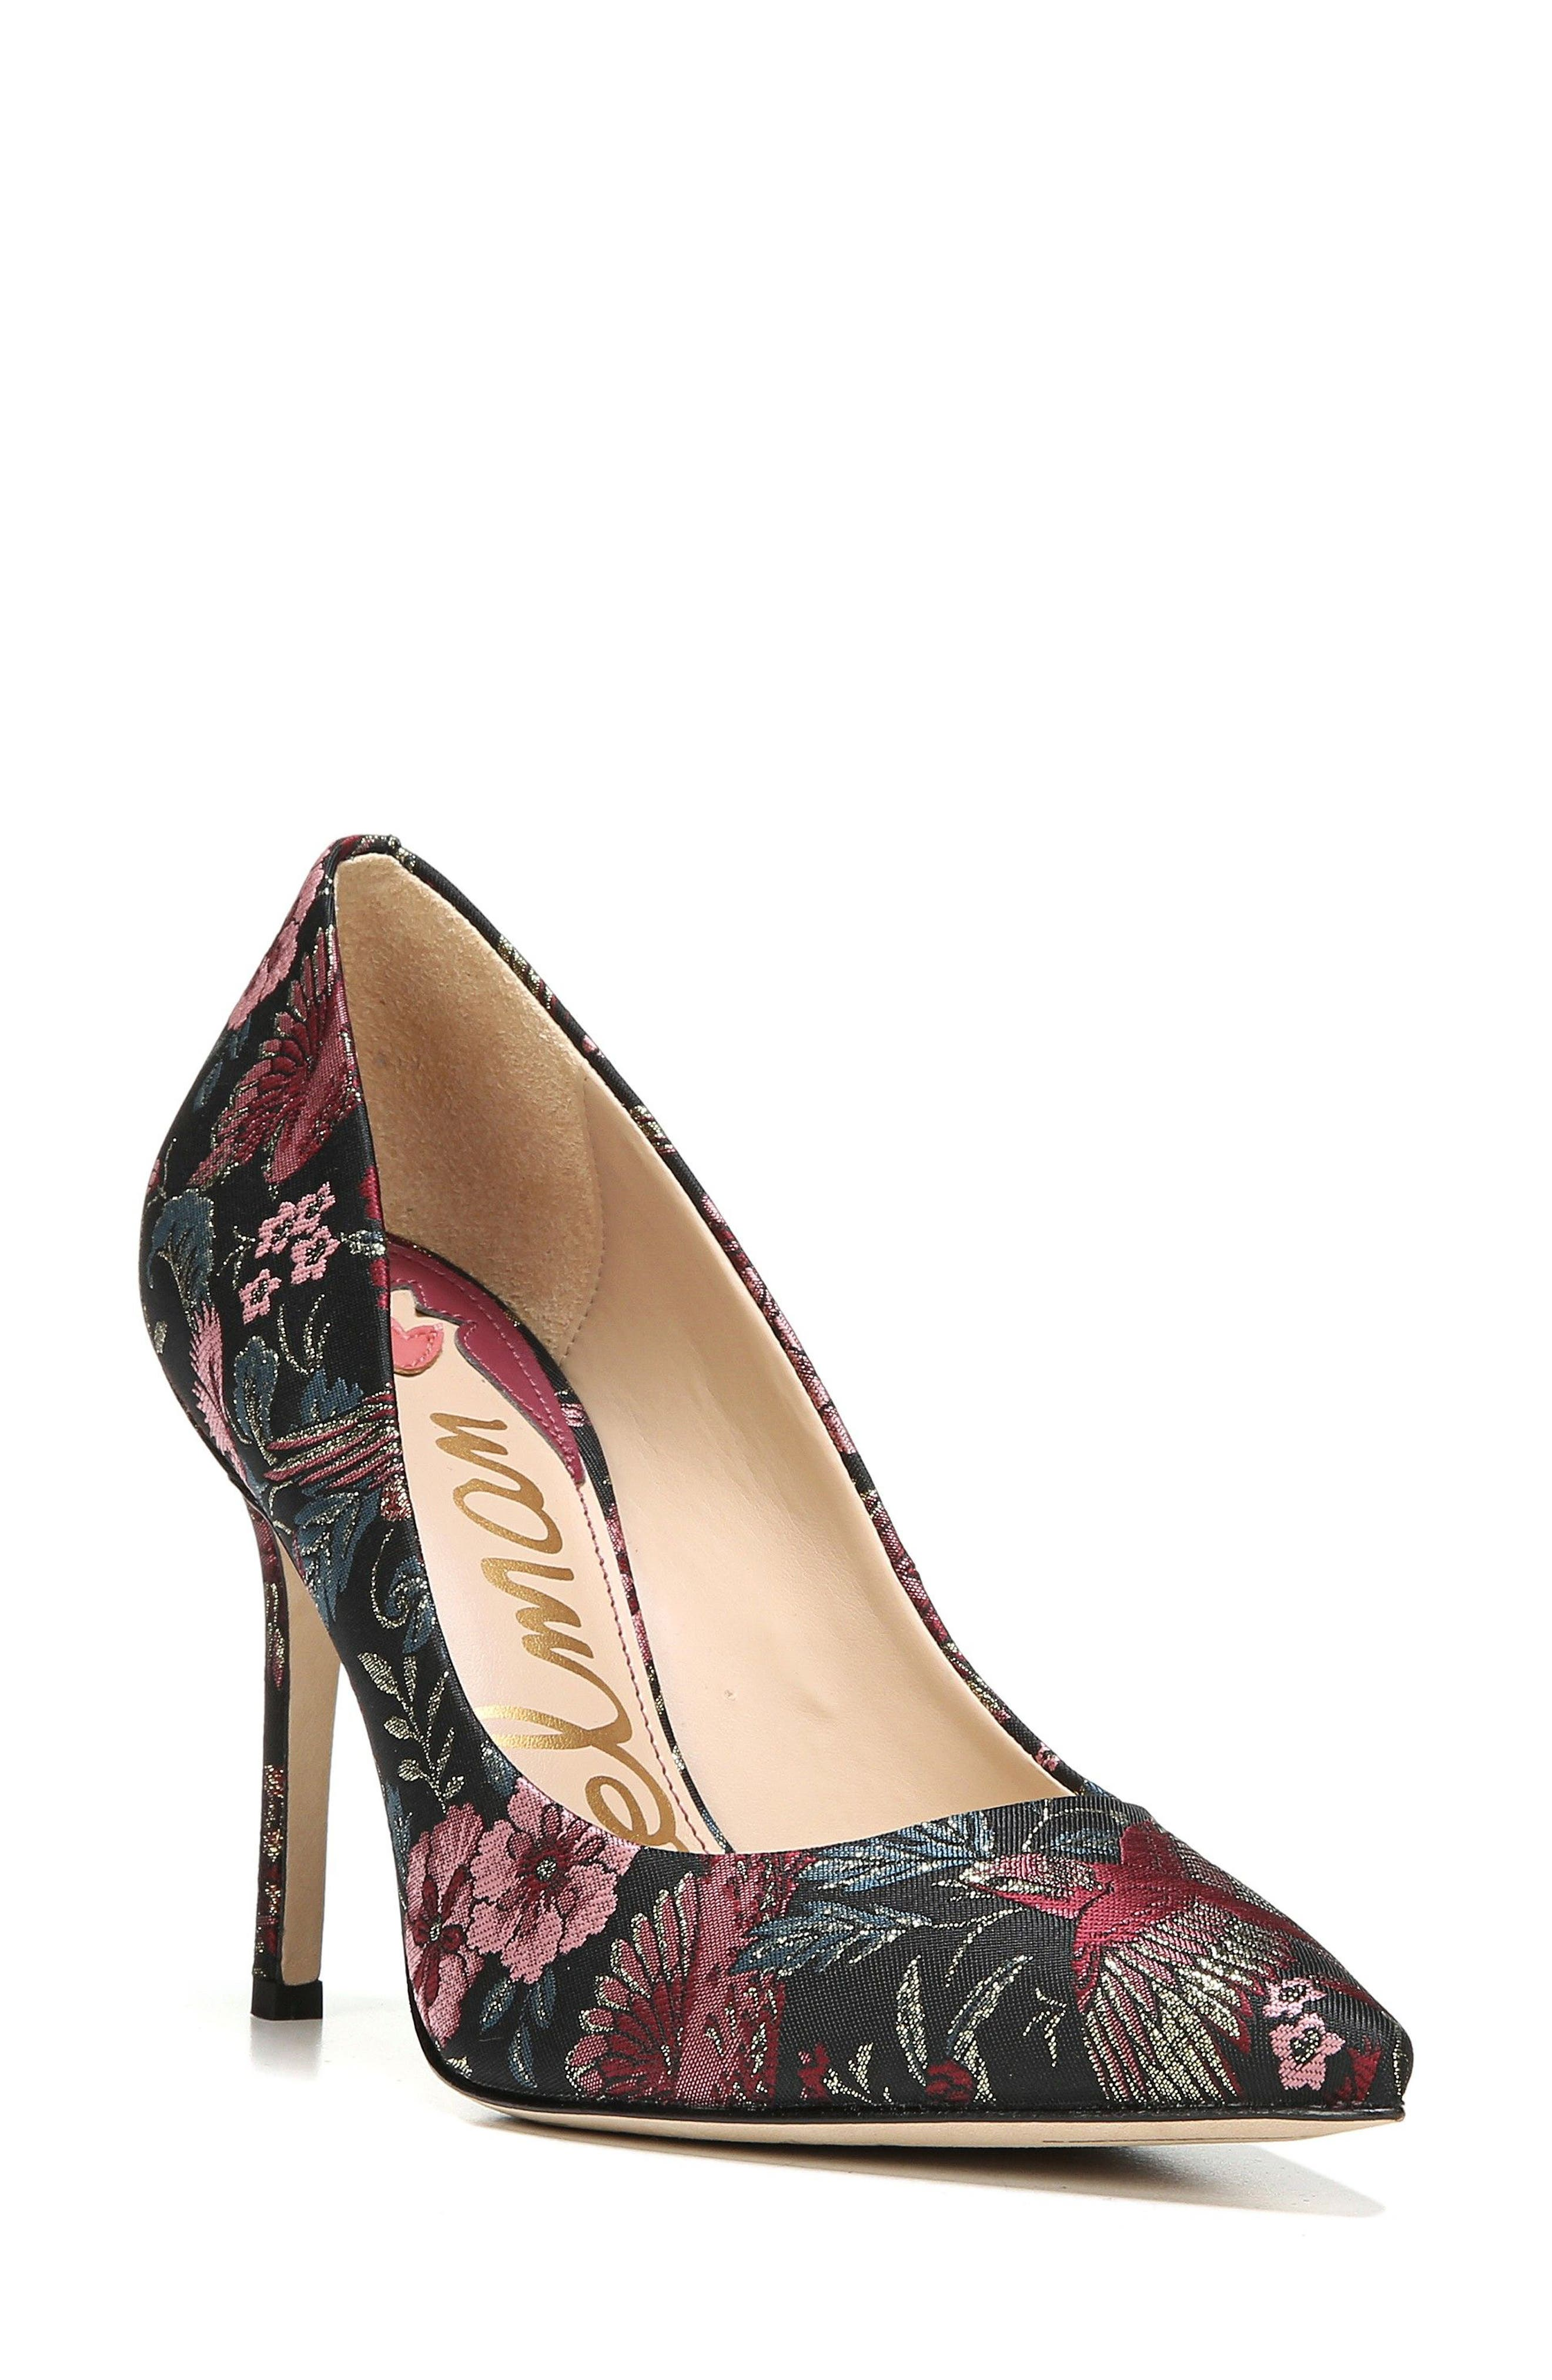 Alternate Image 1 Selected - Sam Edelman Hazel Pump (Women)